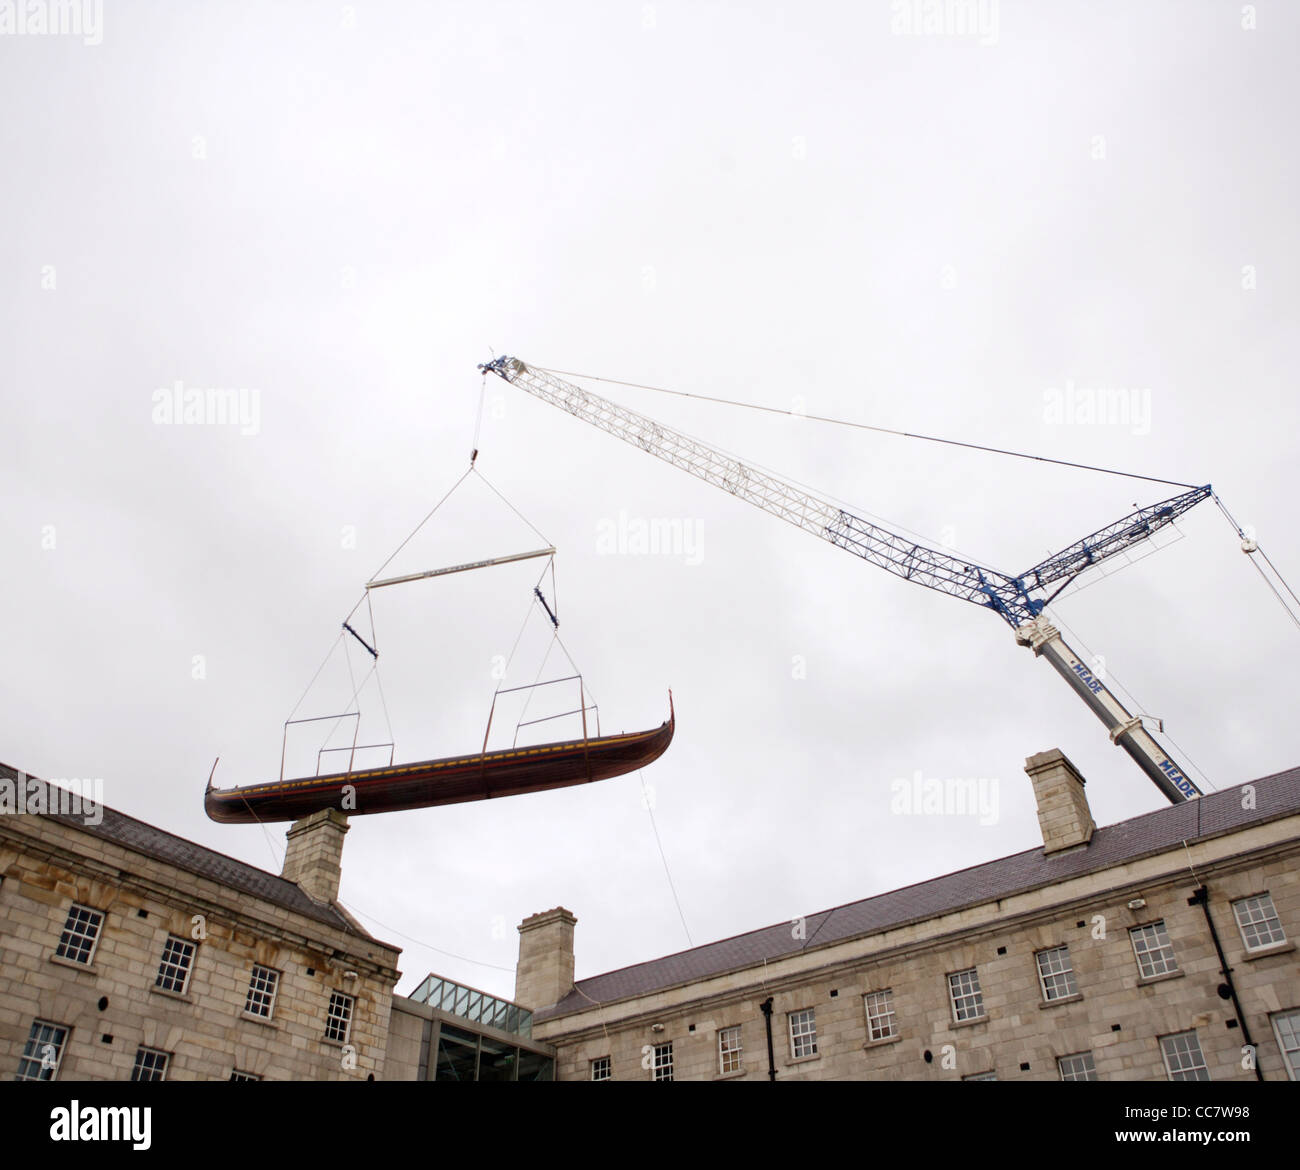 'Sea Stallion' replica viking ship lifted into the courtyard of Collins Barracks Museum, Dublin Ireland - Stock Image